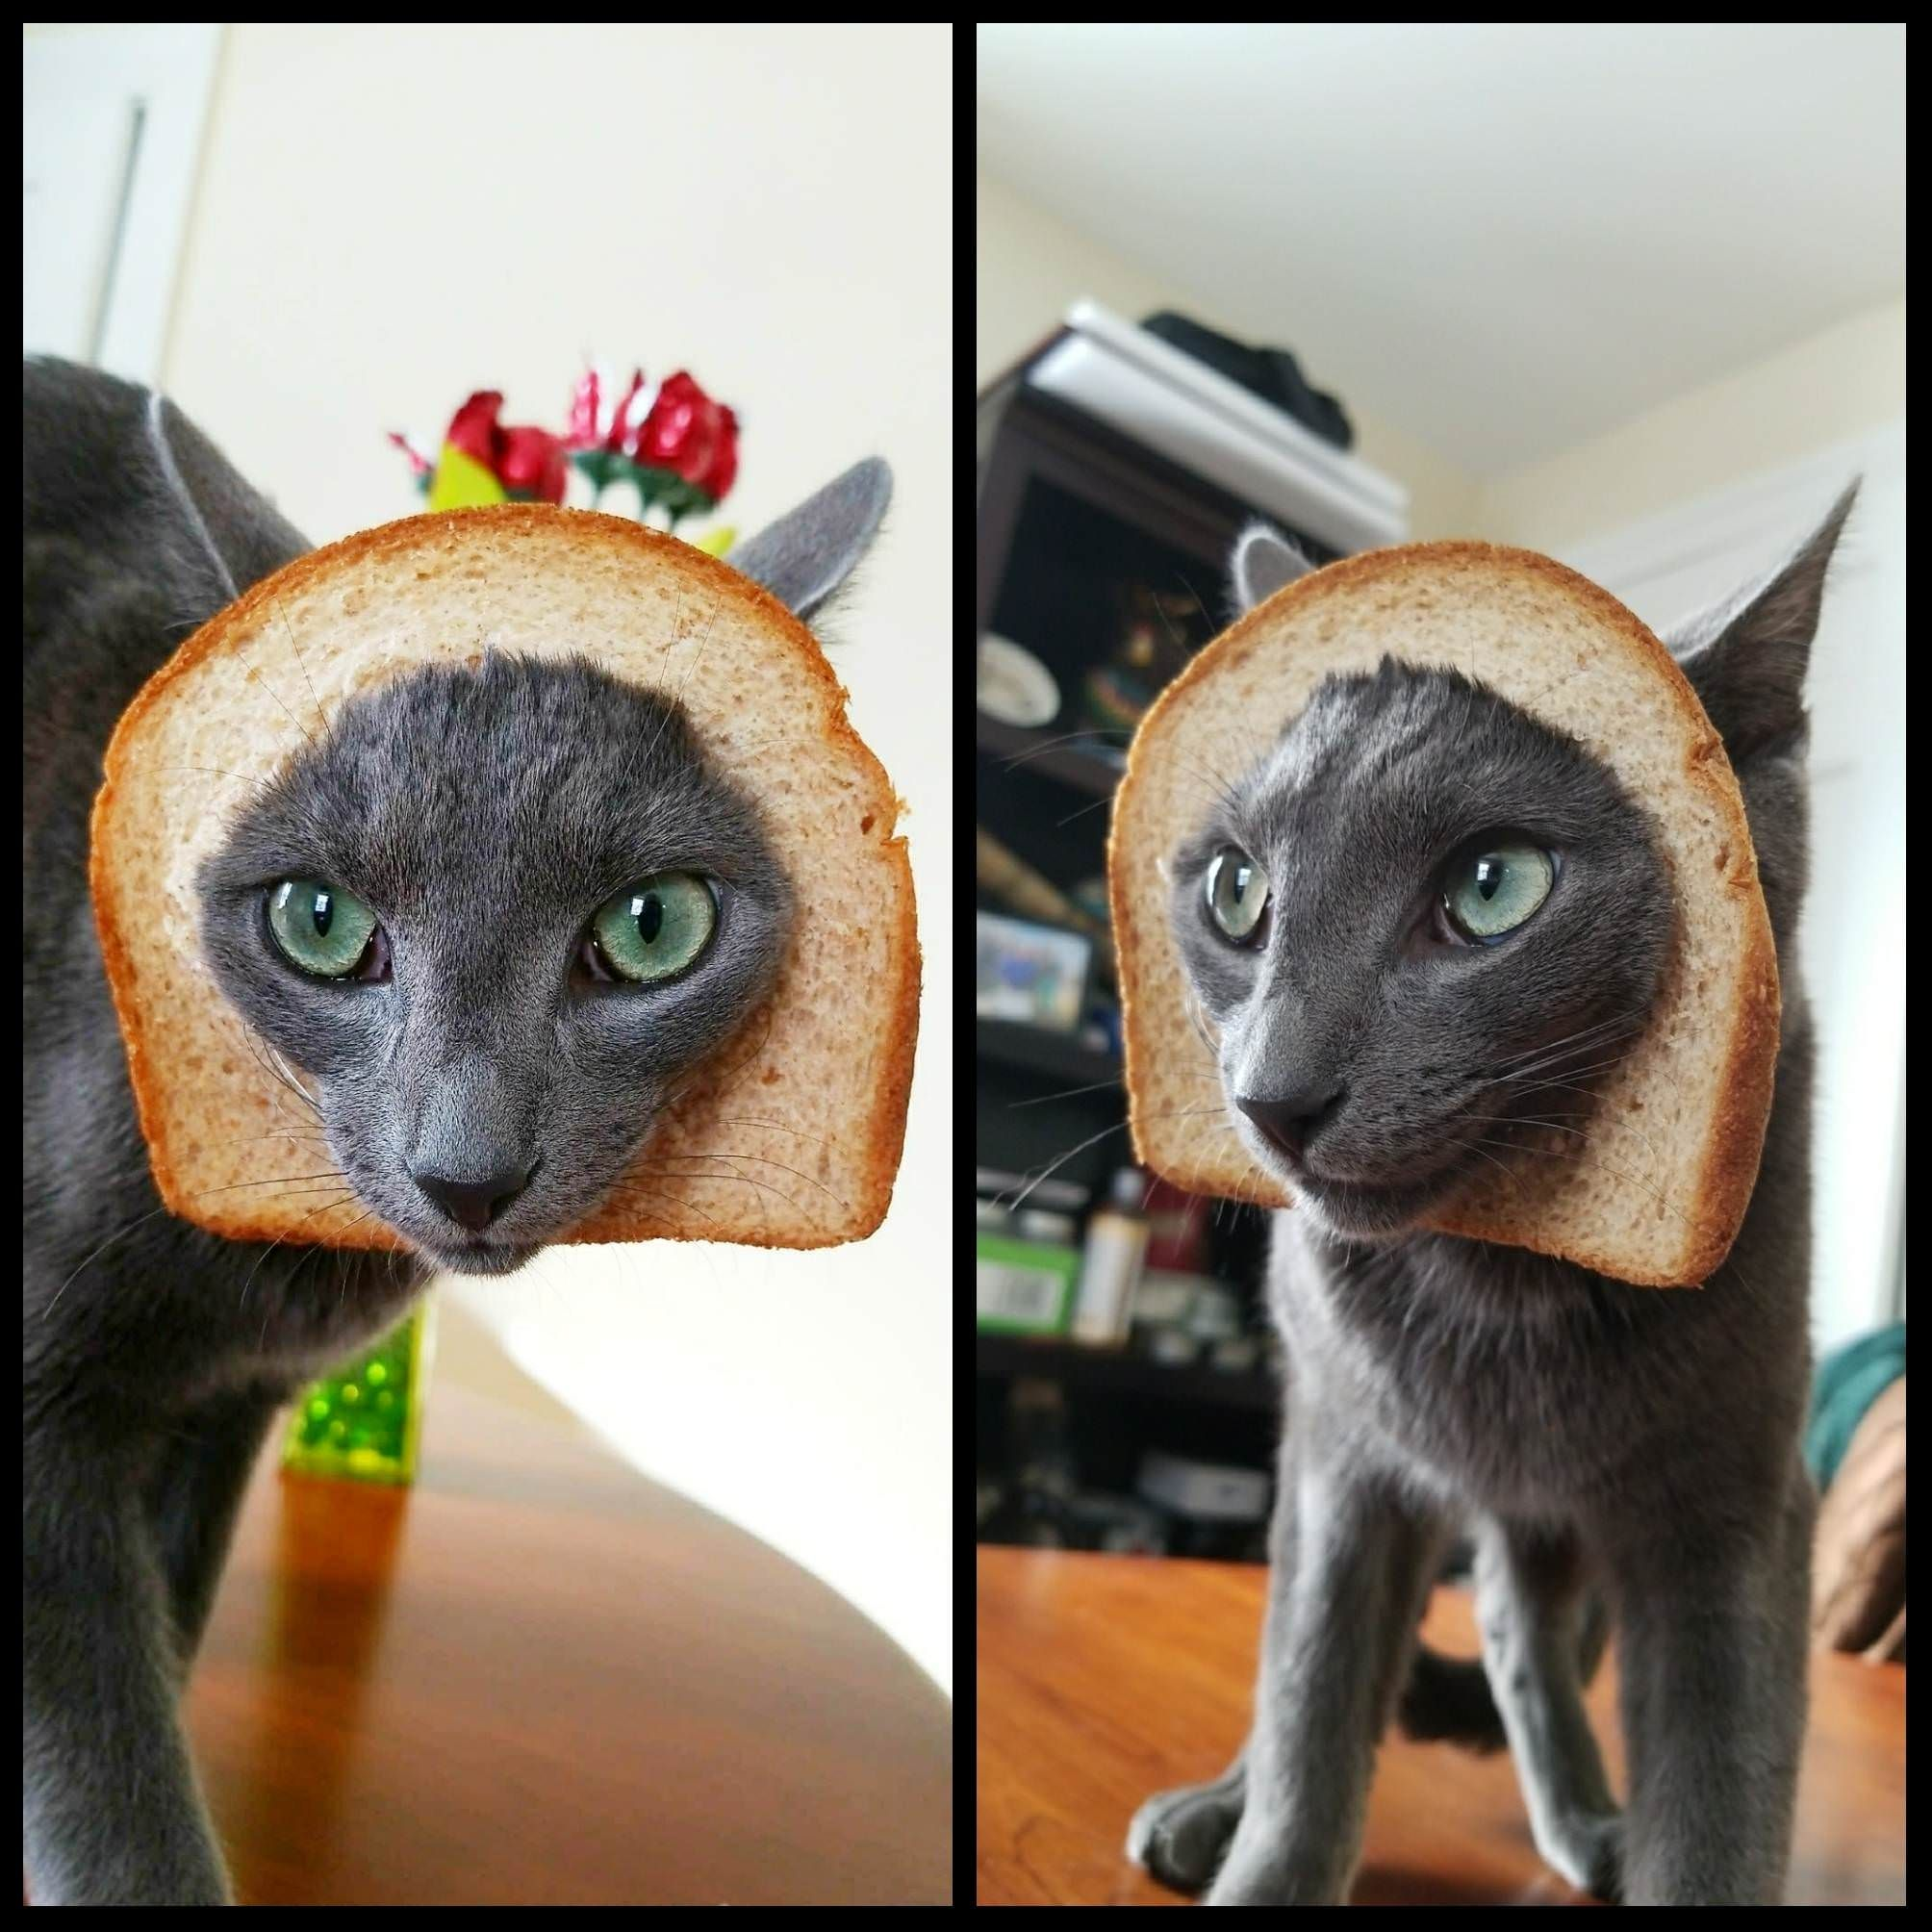 I suspect he may be inbred